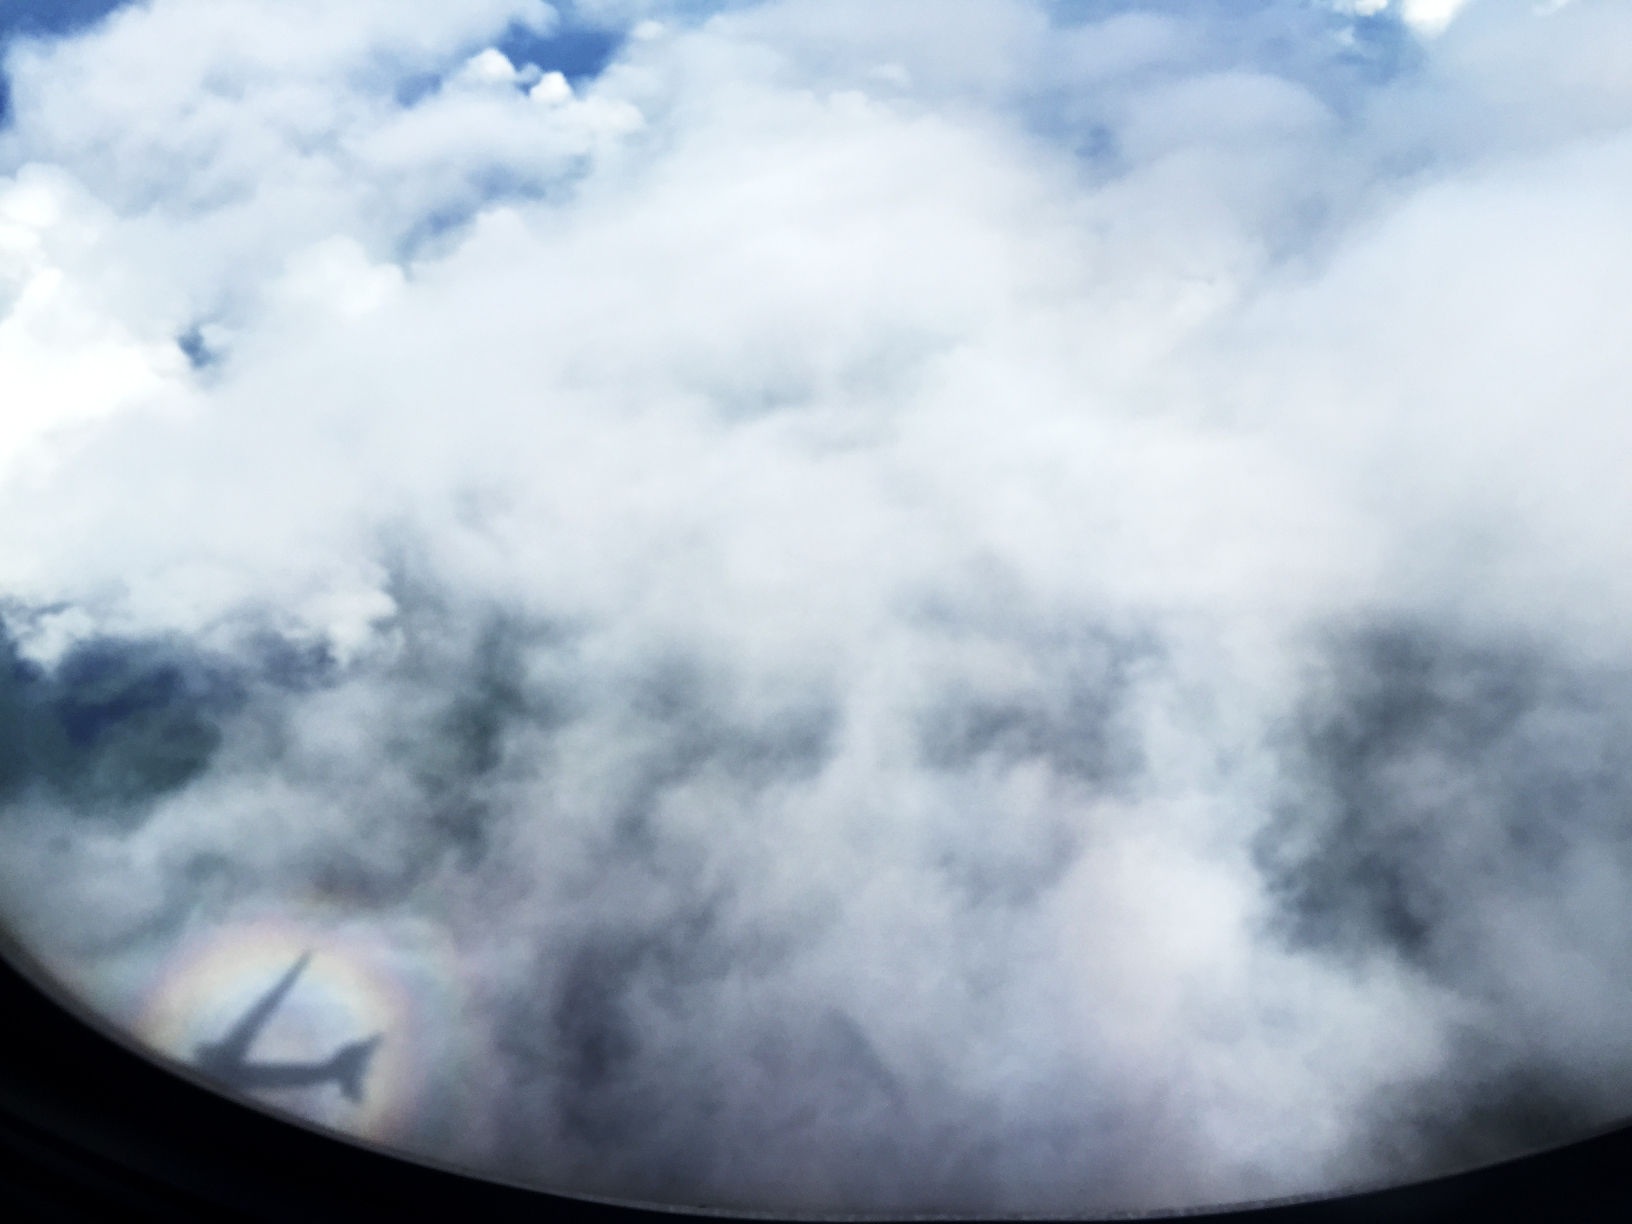 Le gasp! What is that rainbow halo?